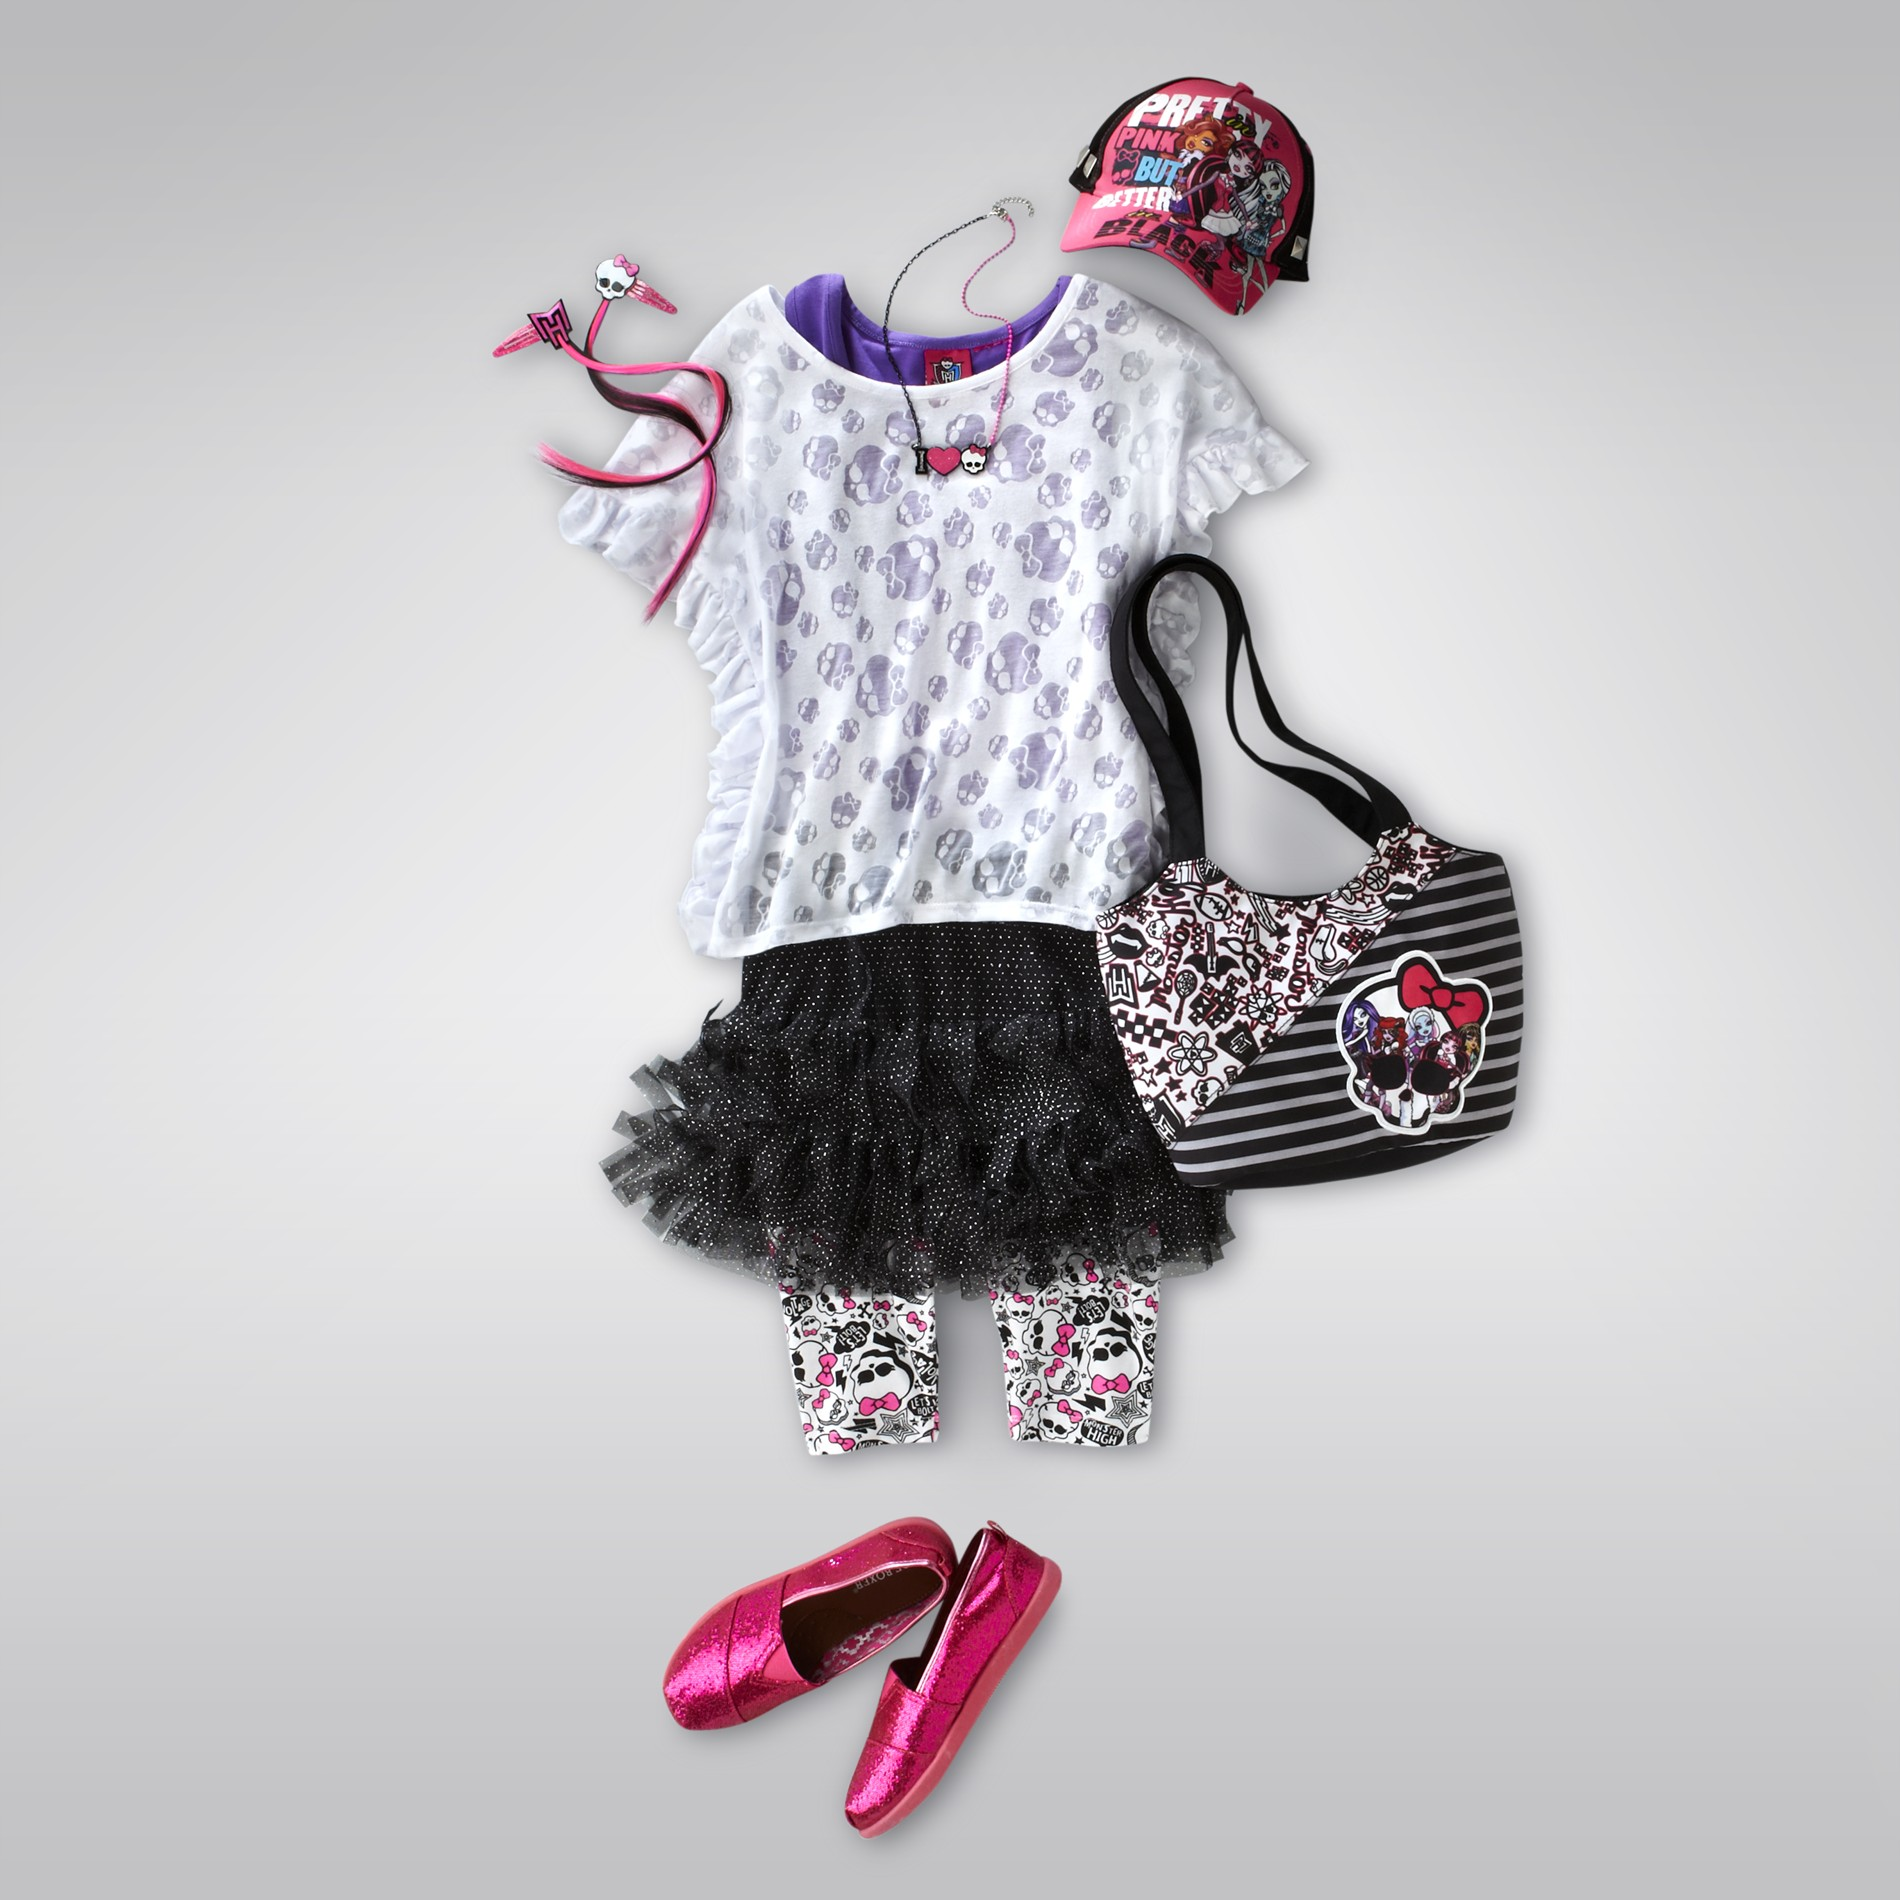 Shes Got Glam Outfit at Kmart.com